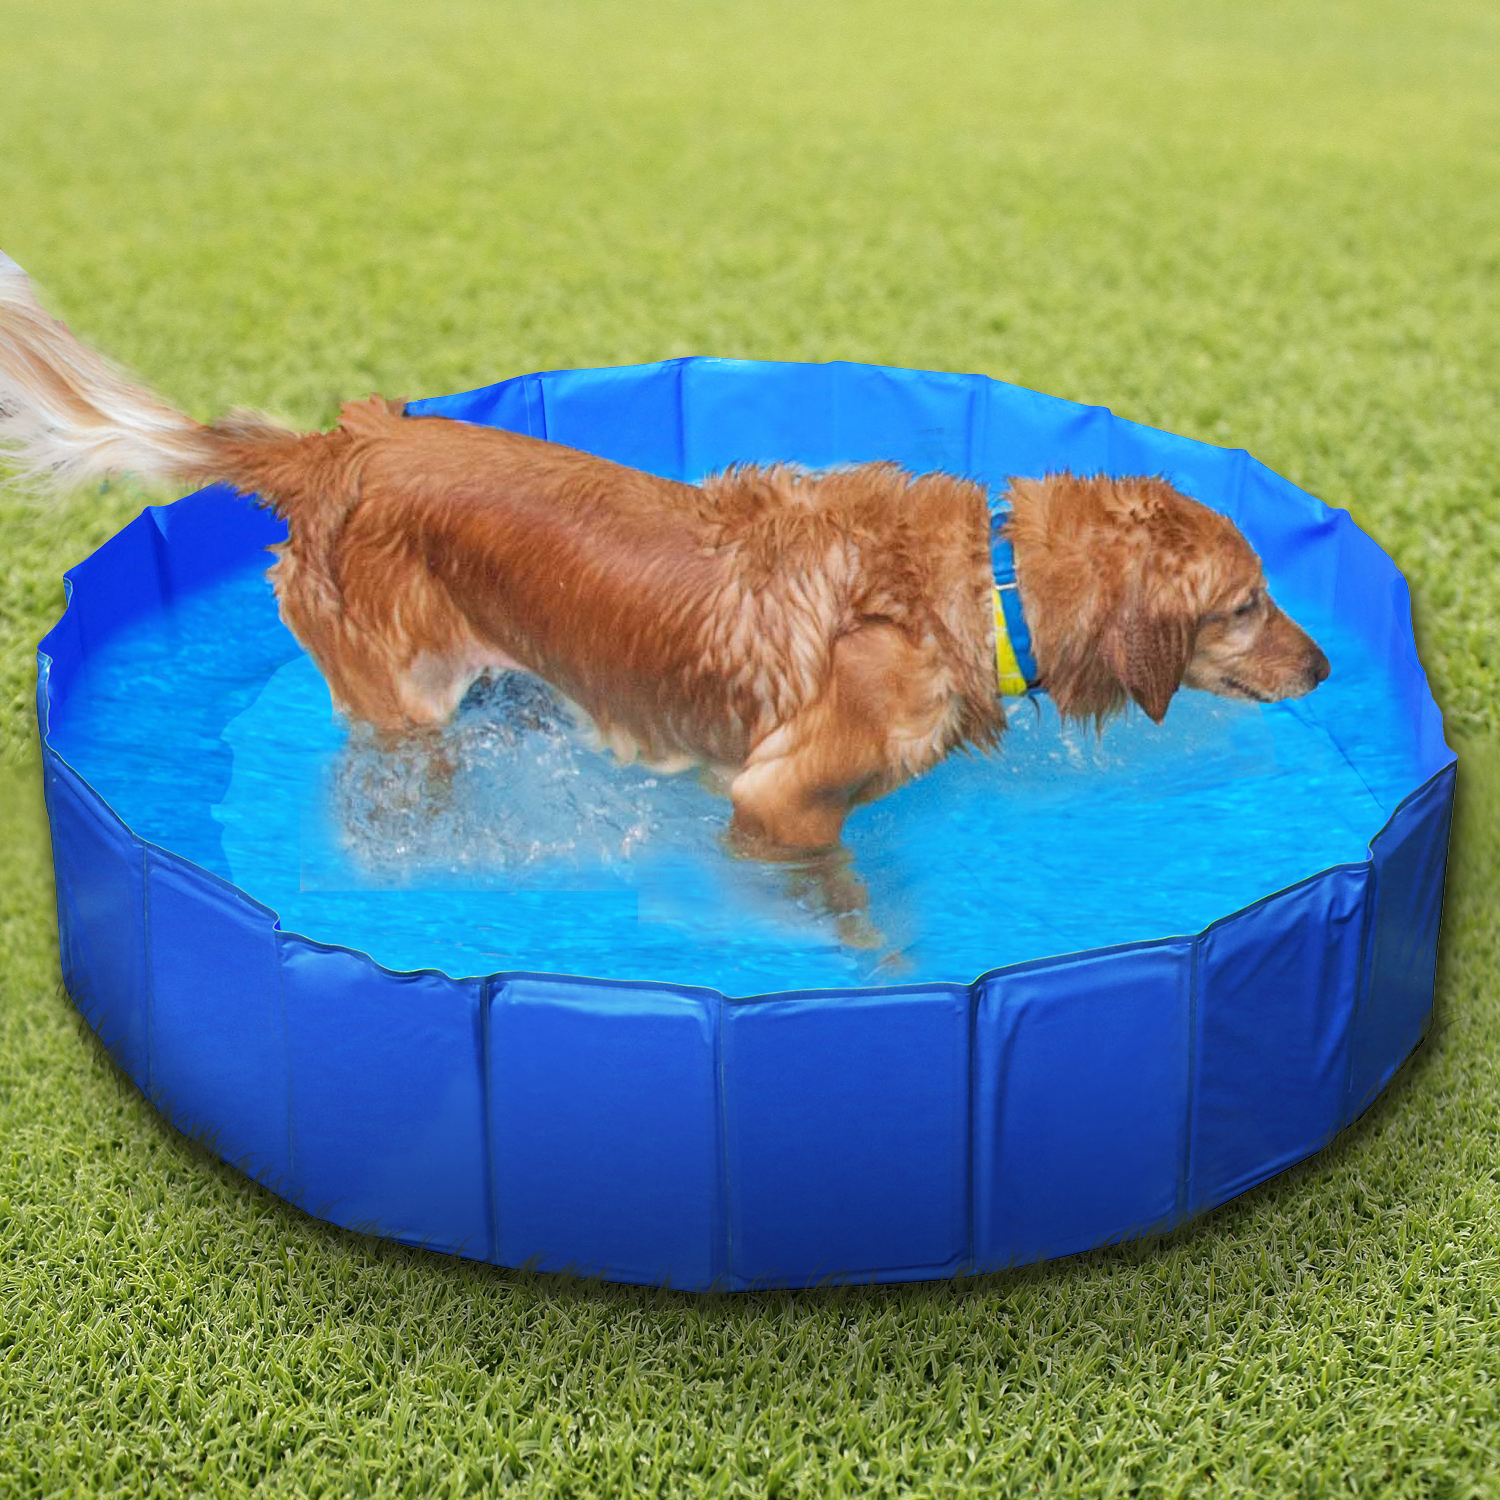 Imountek 63 Inch Foldable Portable Collapsible Foldable Pet Dog Swimming Pool Portable Pvc Bathtub Pool For Cats Rabbits Walmart Com Walmart Com